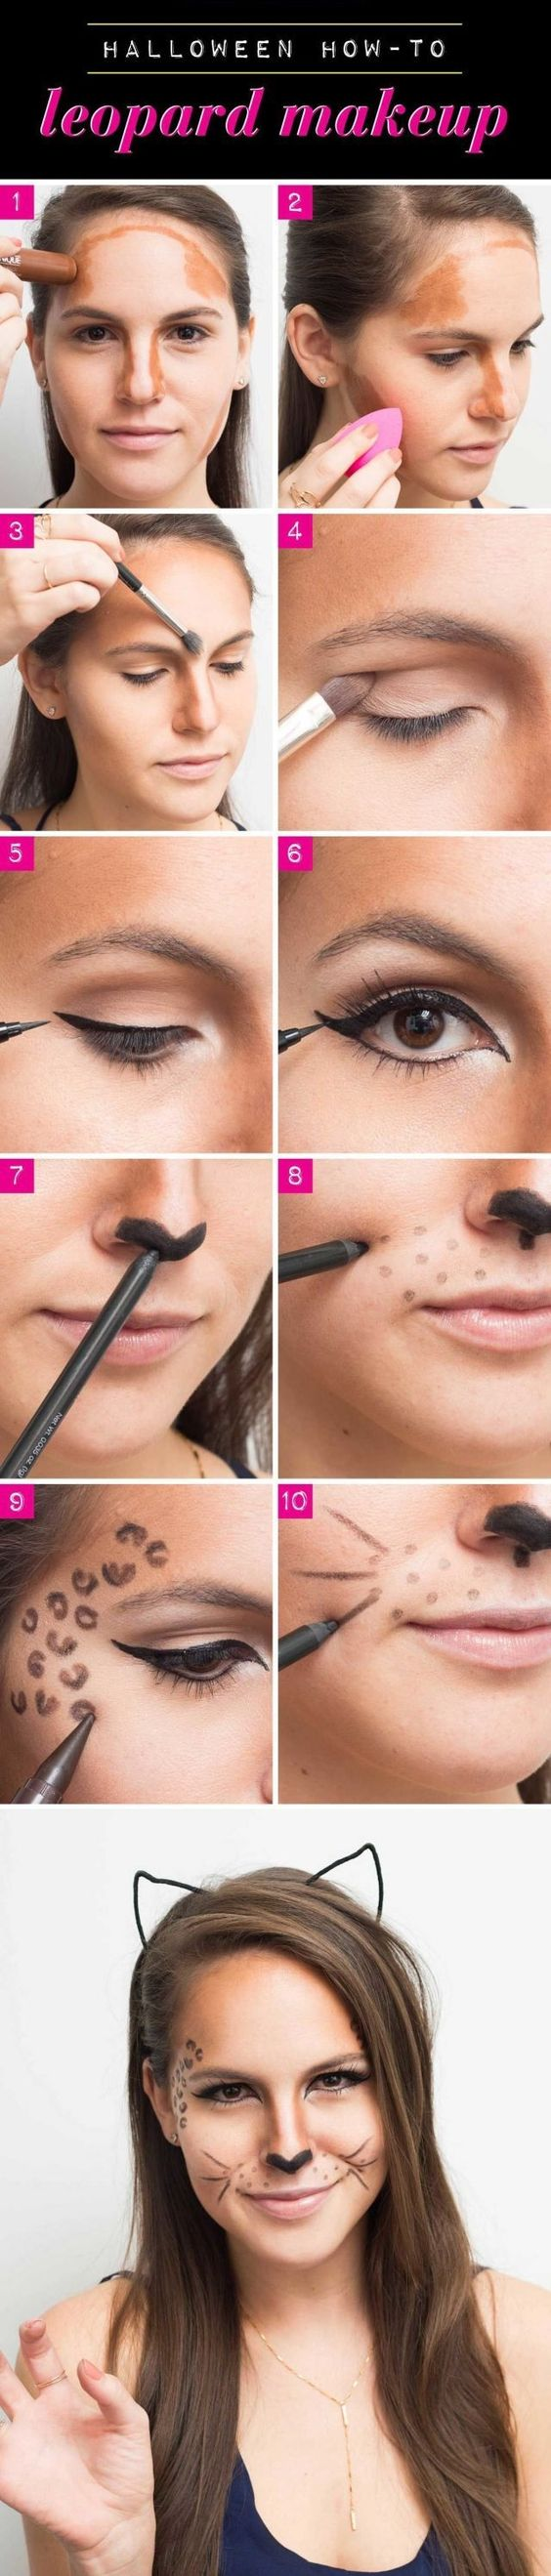 """Halloween makeup made easy! This tutorial is perfectly simple for anyone wanting to add a little """"cattitude"""" to their costume!"""